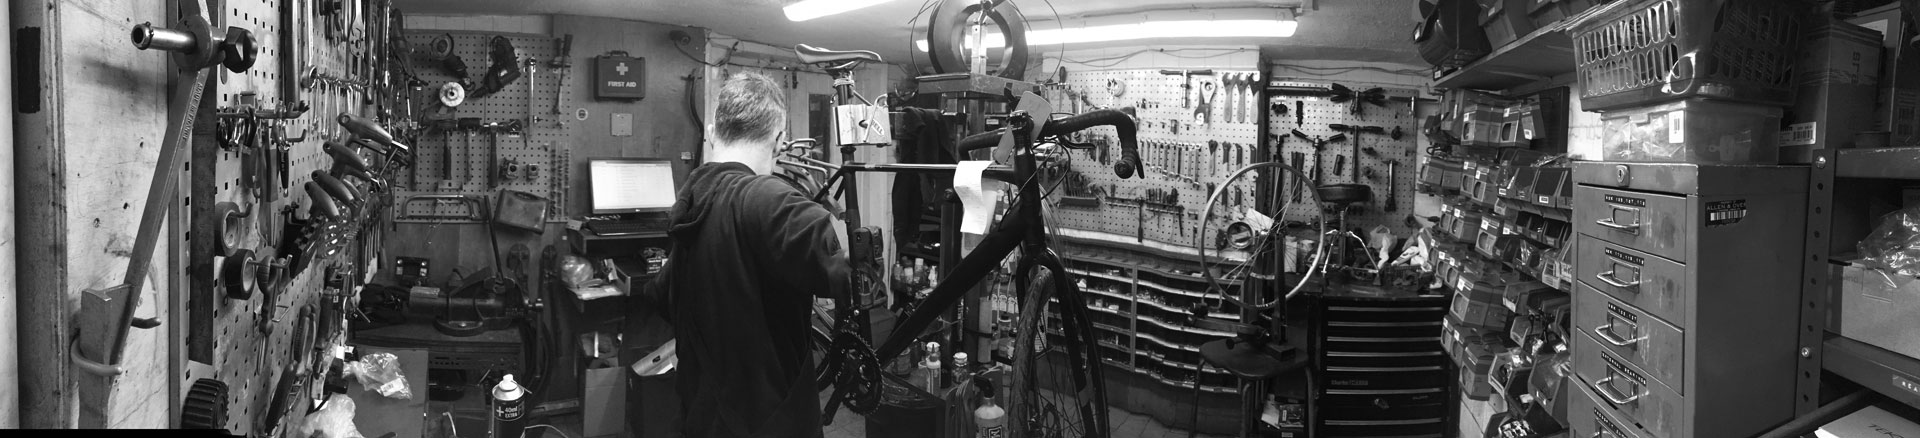 Cycle Workshop service and repair Stoke Newington